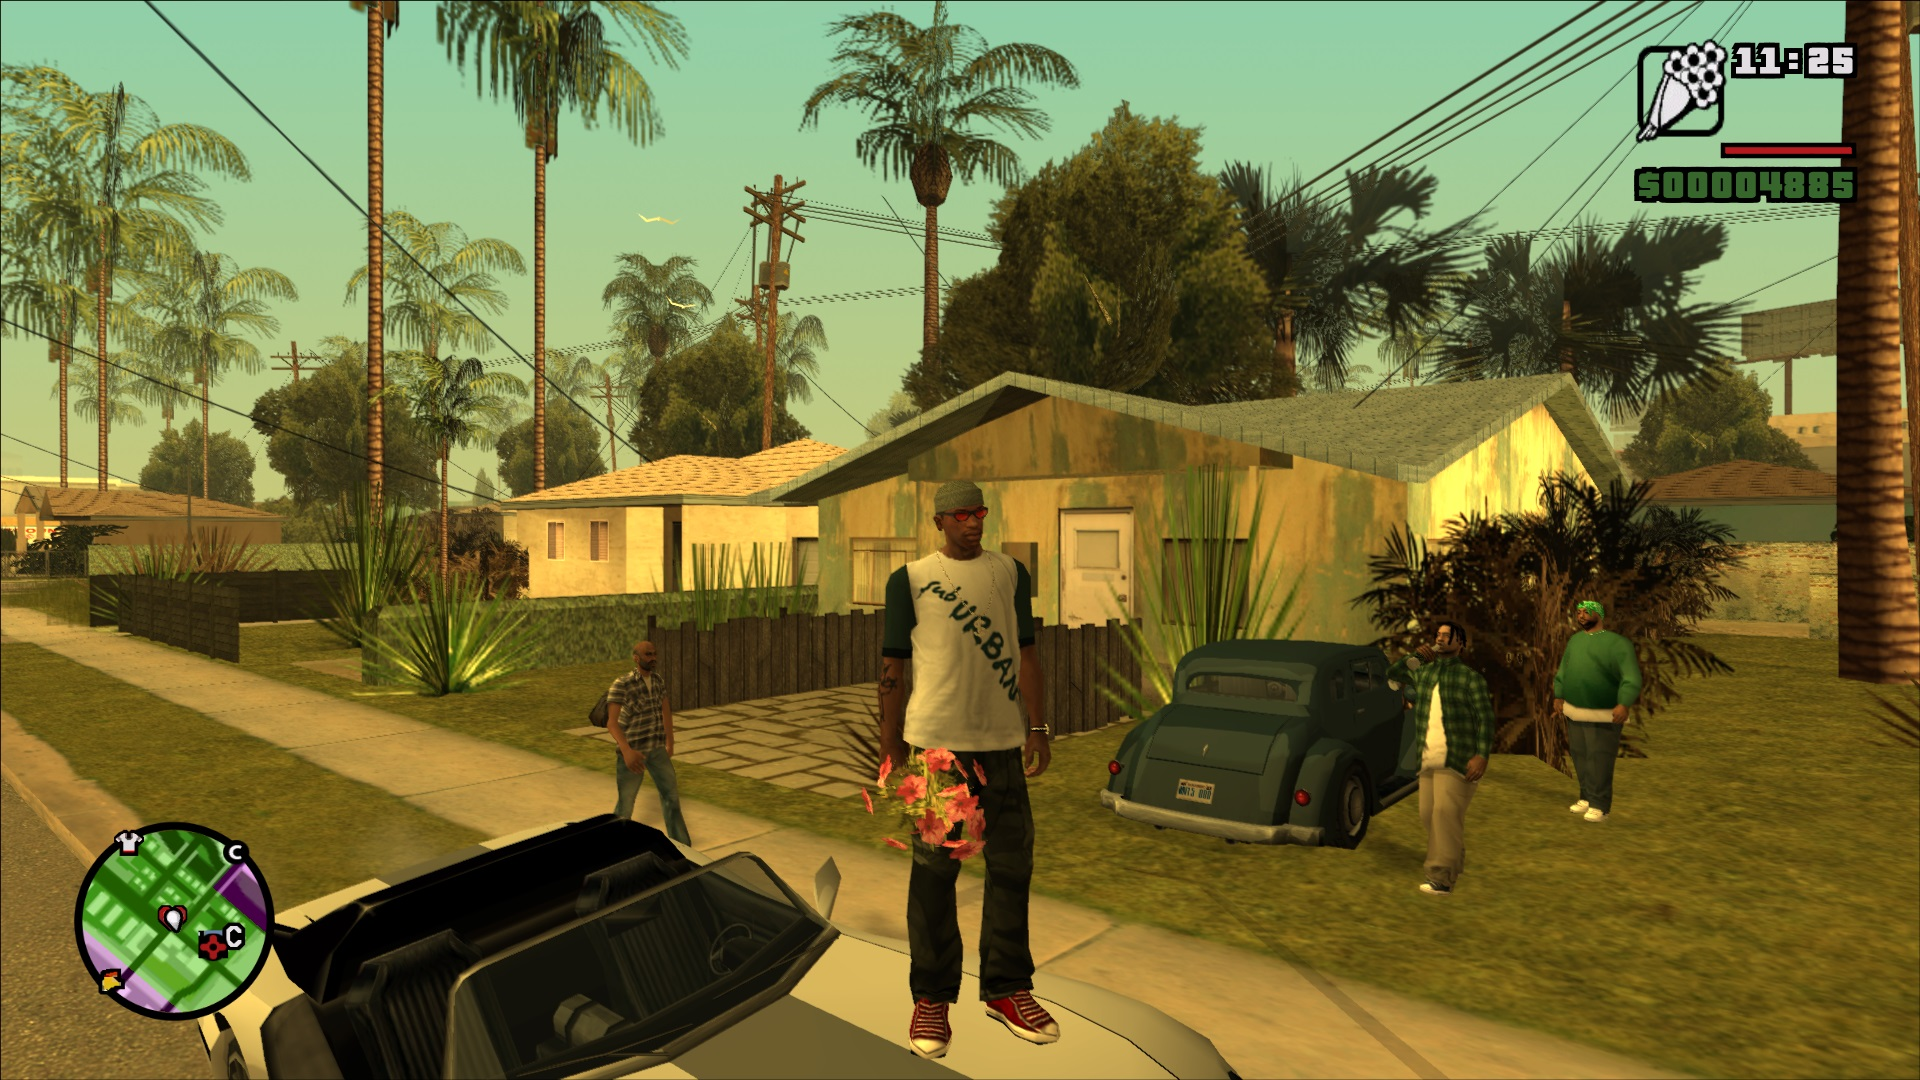 GTA San Andreas (mod - full screen and PS2 sun bloor) - Grand Theft Auto: San Andreas Моды